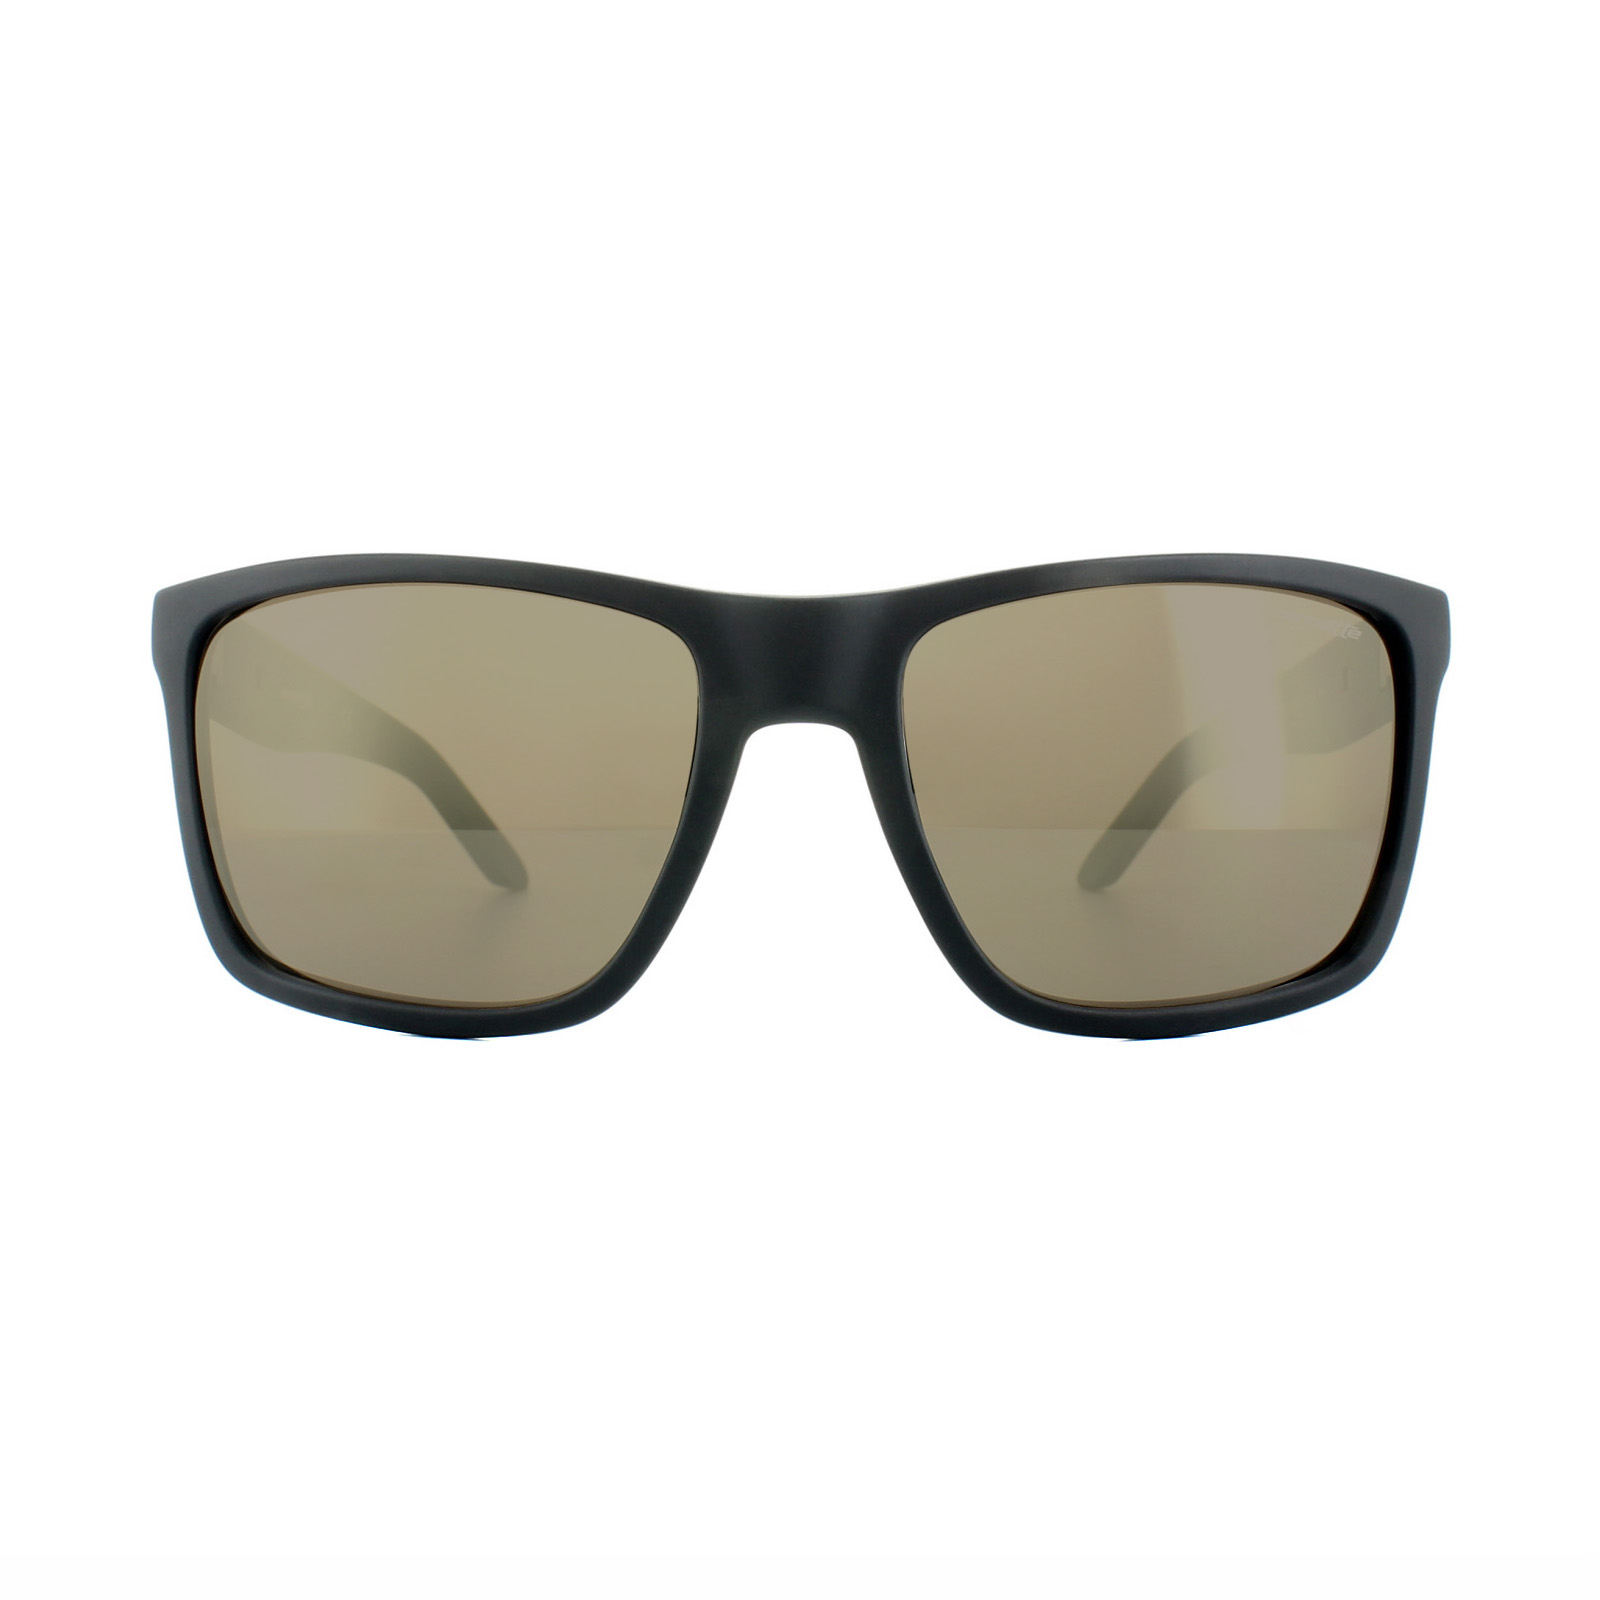 a8239e8fe3 Details about Arnette Sunglasses Witch Doctor 4177 24355A Black Turquoise  Brown Mirror Gold